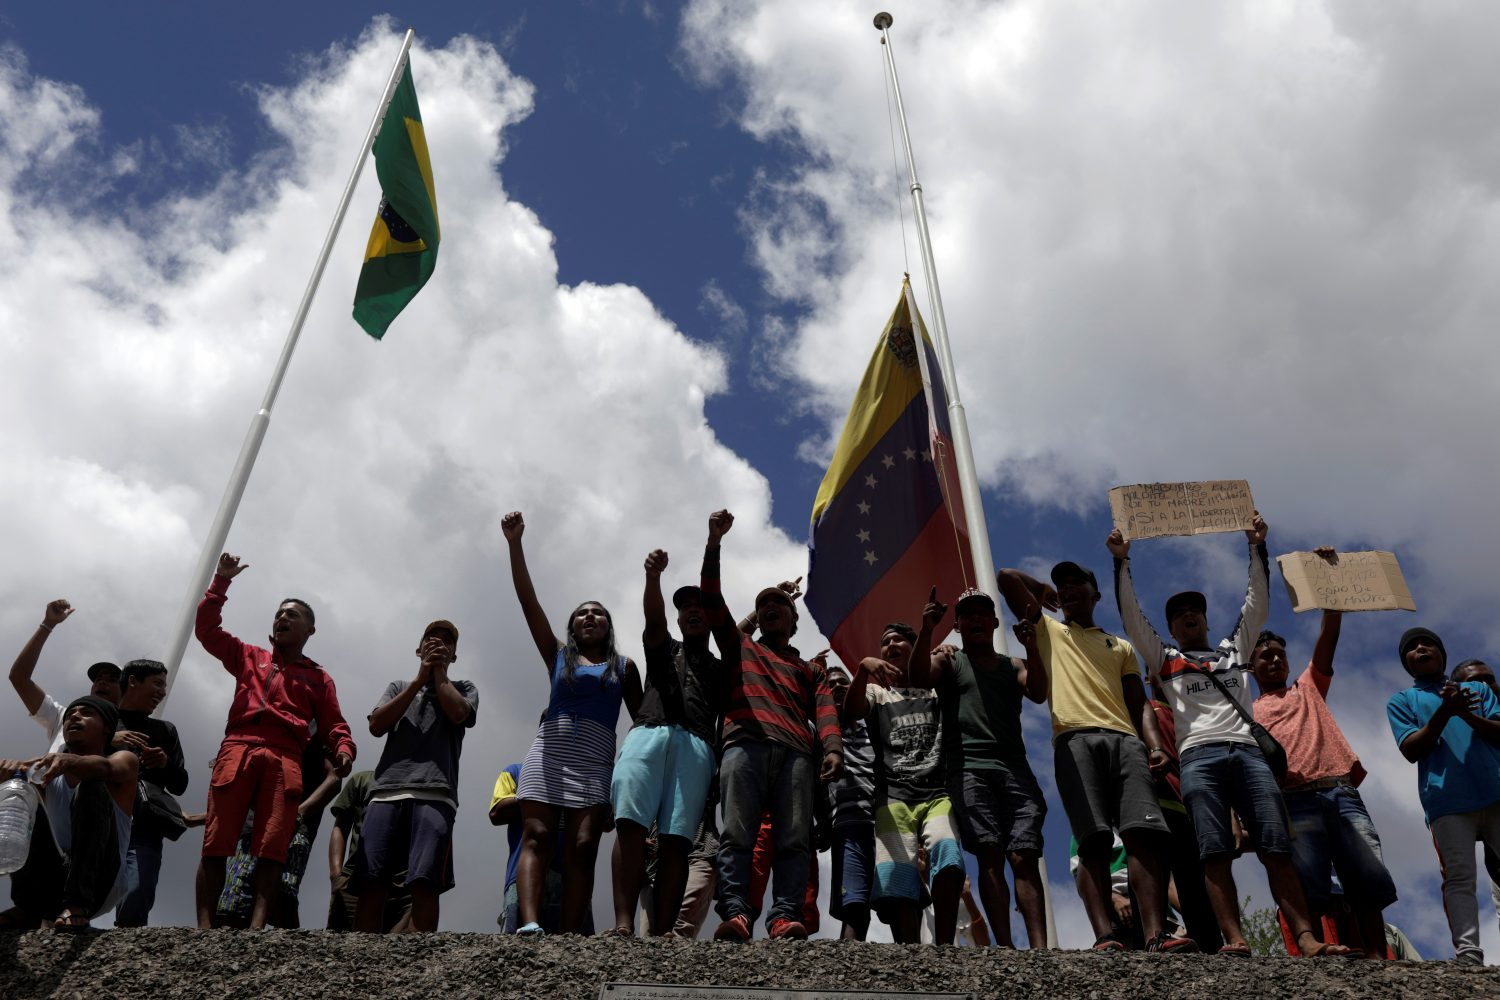 People waiting to cross to Venezuela gesture at the border between Venezuela and Brazil in Pacaraima, Roraima state, Brazil, February 22, 2019. REUTERS/Ricardo Moraes